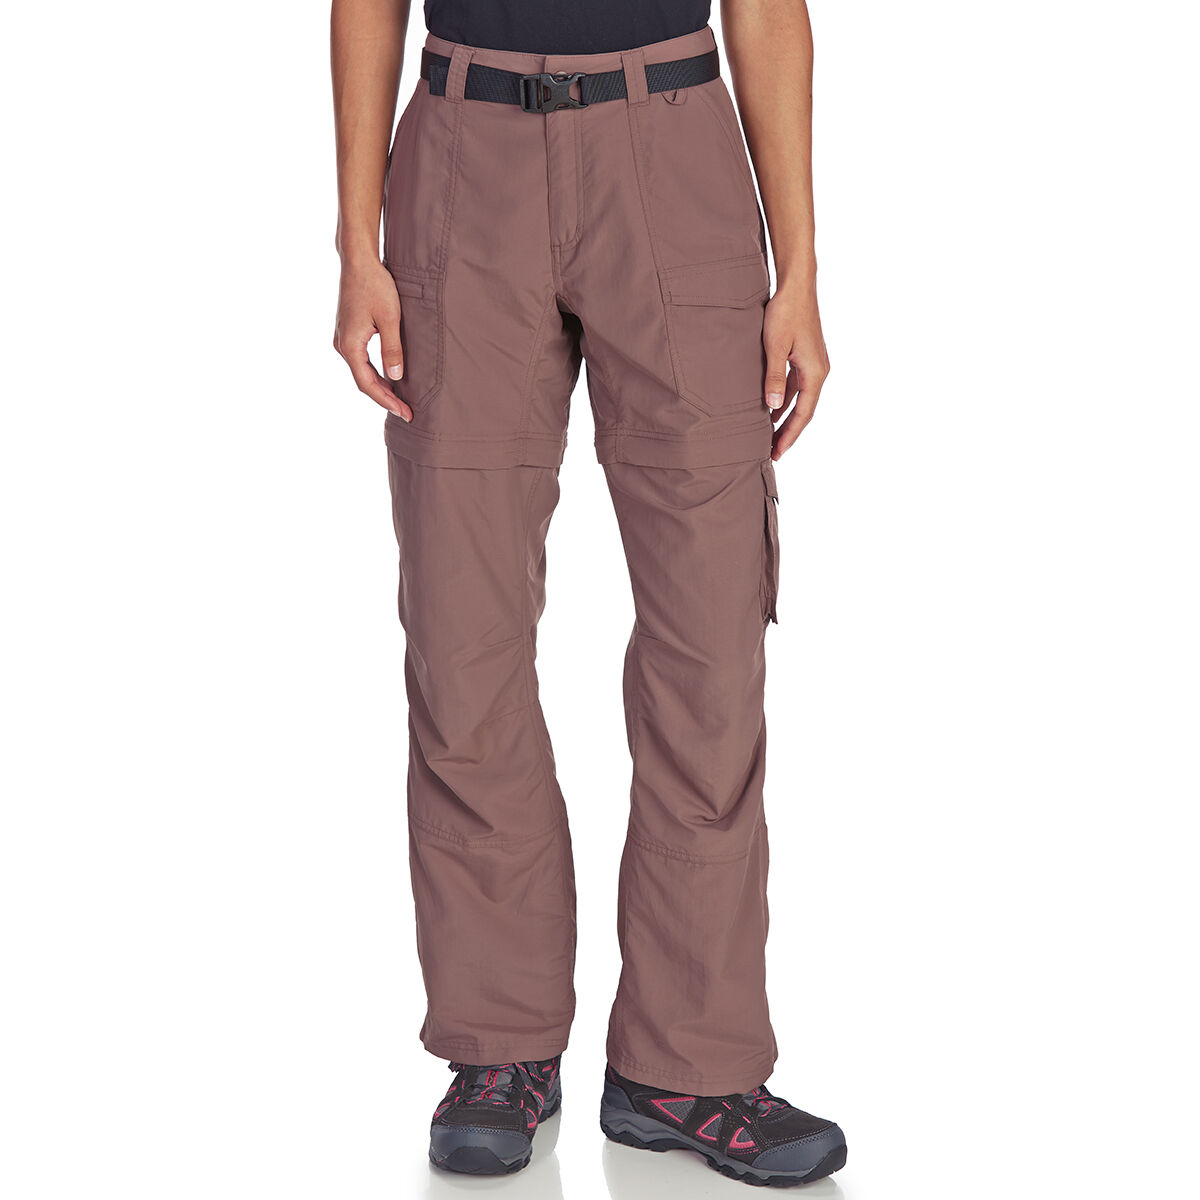 Ems Women's Camp Cargo Zip-Off Pants - Black, 6/S